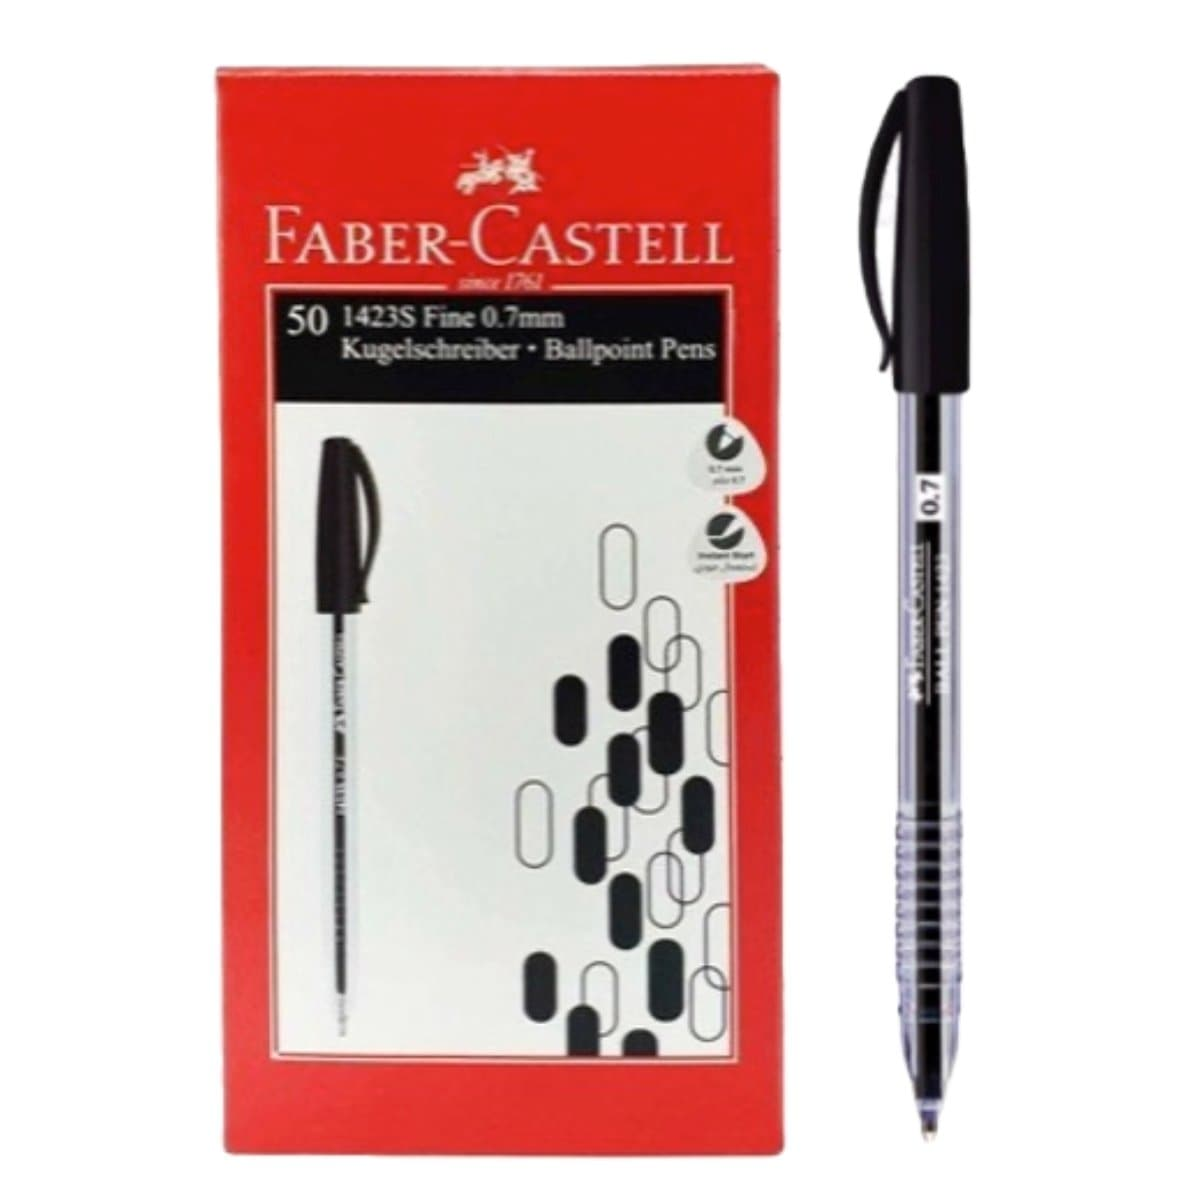 Faber Castell Ballpen 1423, 0.7mm, 50/box, Black